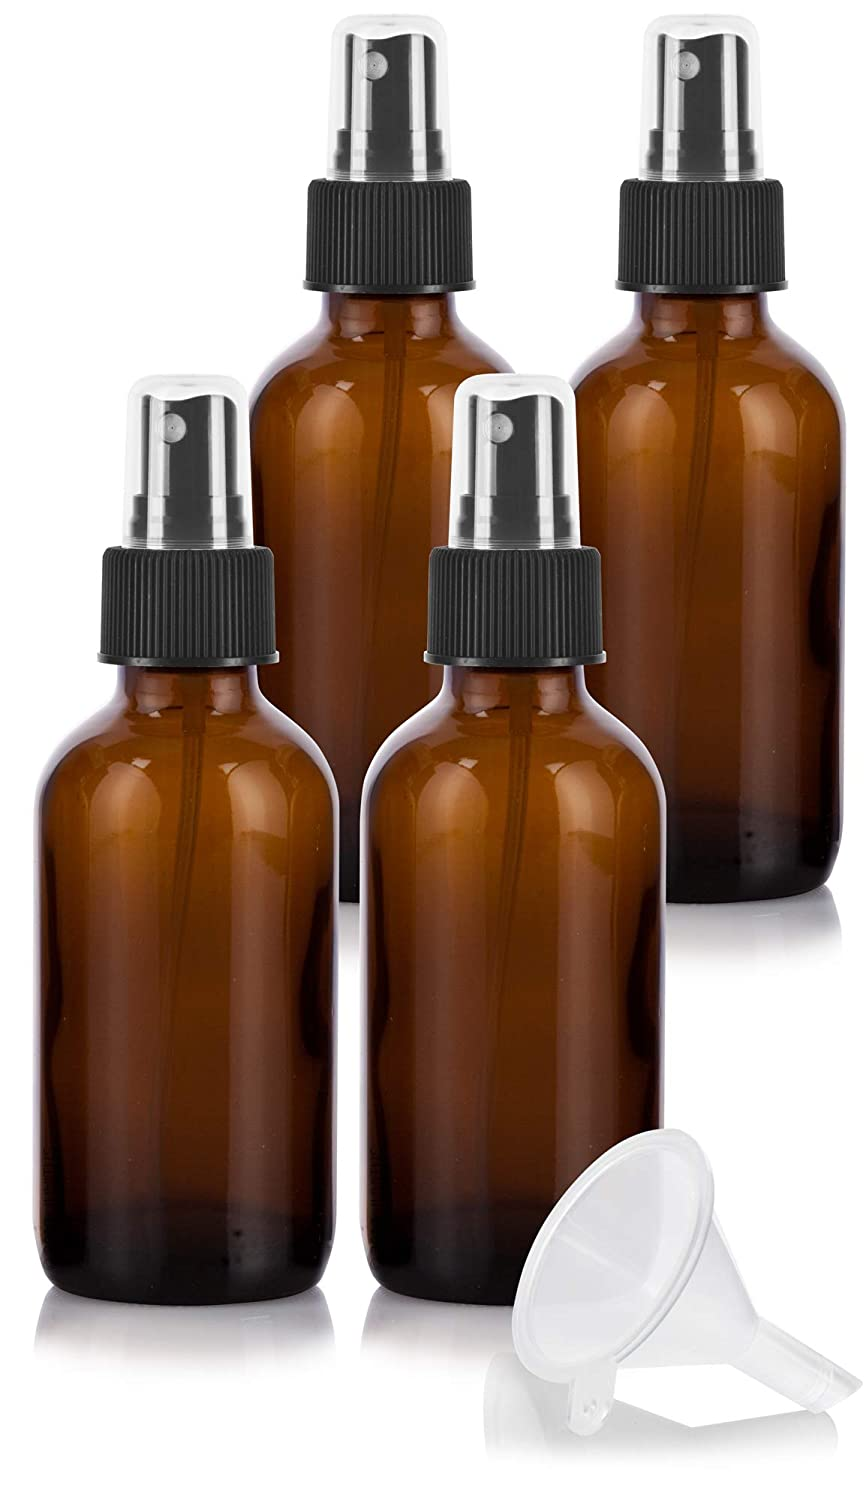 4 oz Amber Glass Boston Round Fine Mist Spray Bottle 4 Pack Funnel for Essential Oils, Aromatherapy, Food Grade, bpa Free